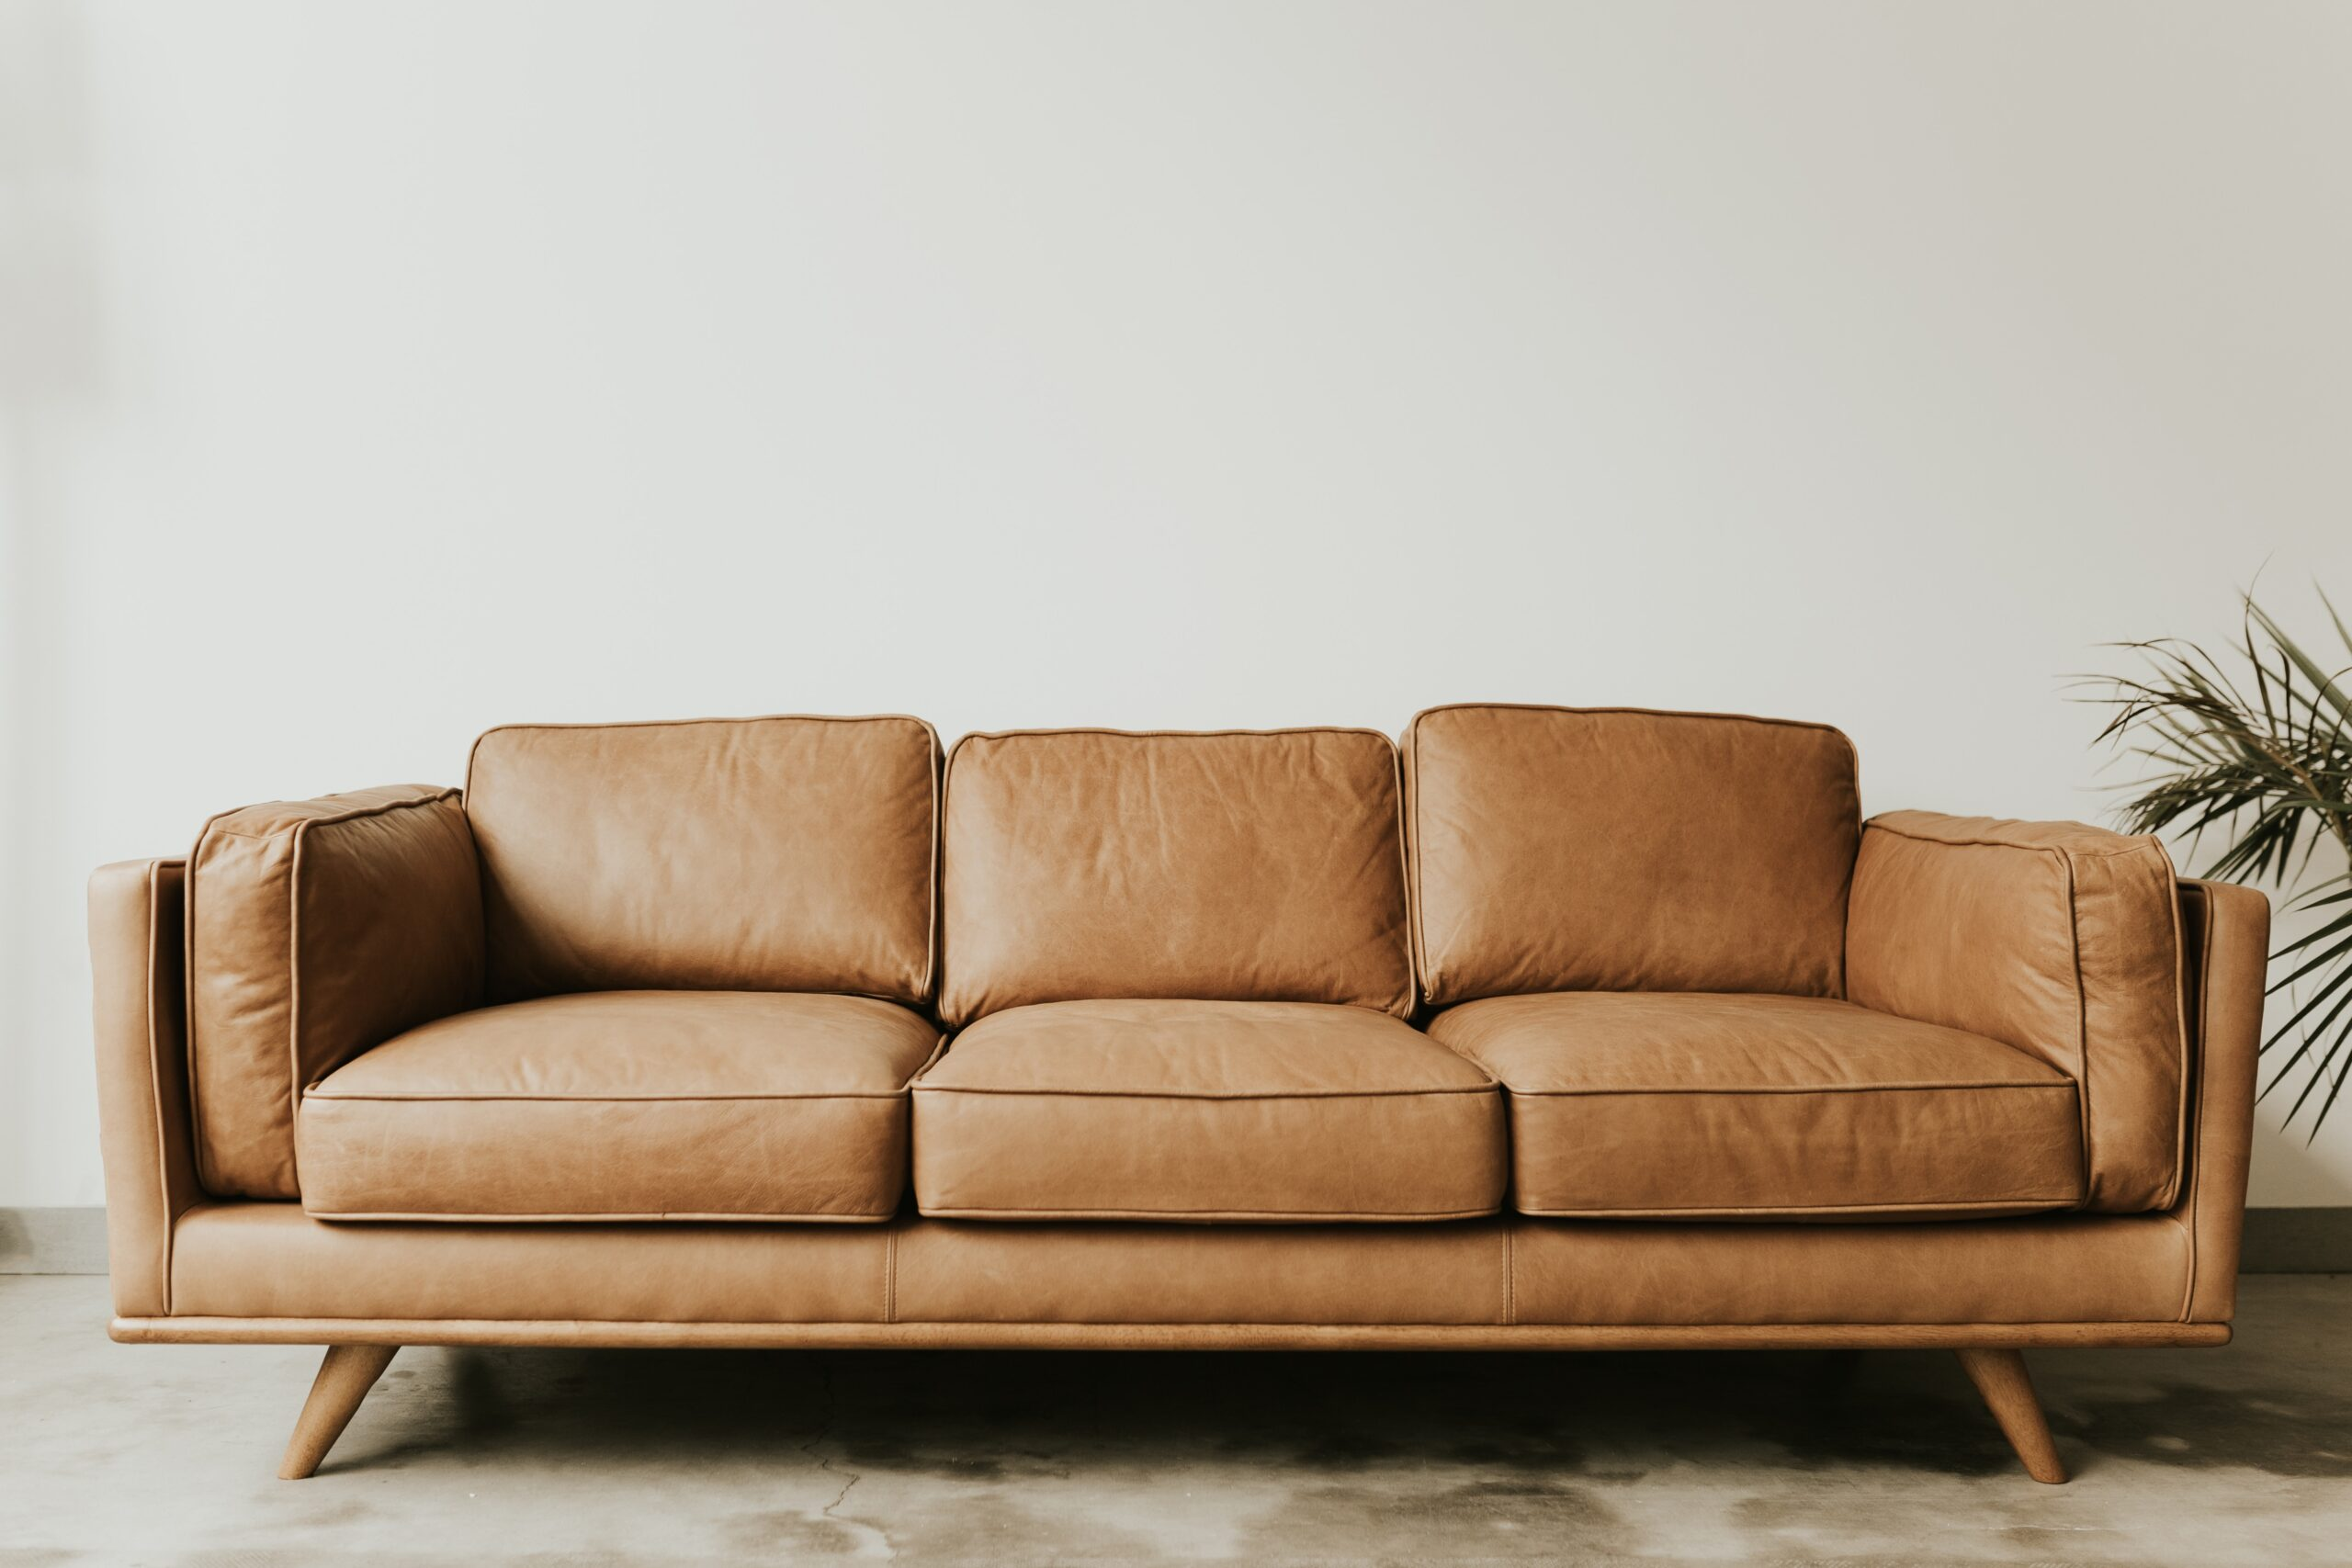 Full Size of Sofa Alternatives Cheap Reddit Ikea Couch Living Room For Small Spaces Sleeper Togo 6 Better To Throwing Away Your Old Ligne Roset L Form Für Esstisch Cognac Sofa Sofa Alternatives